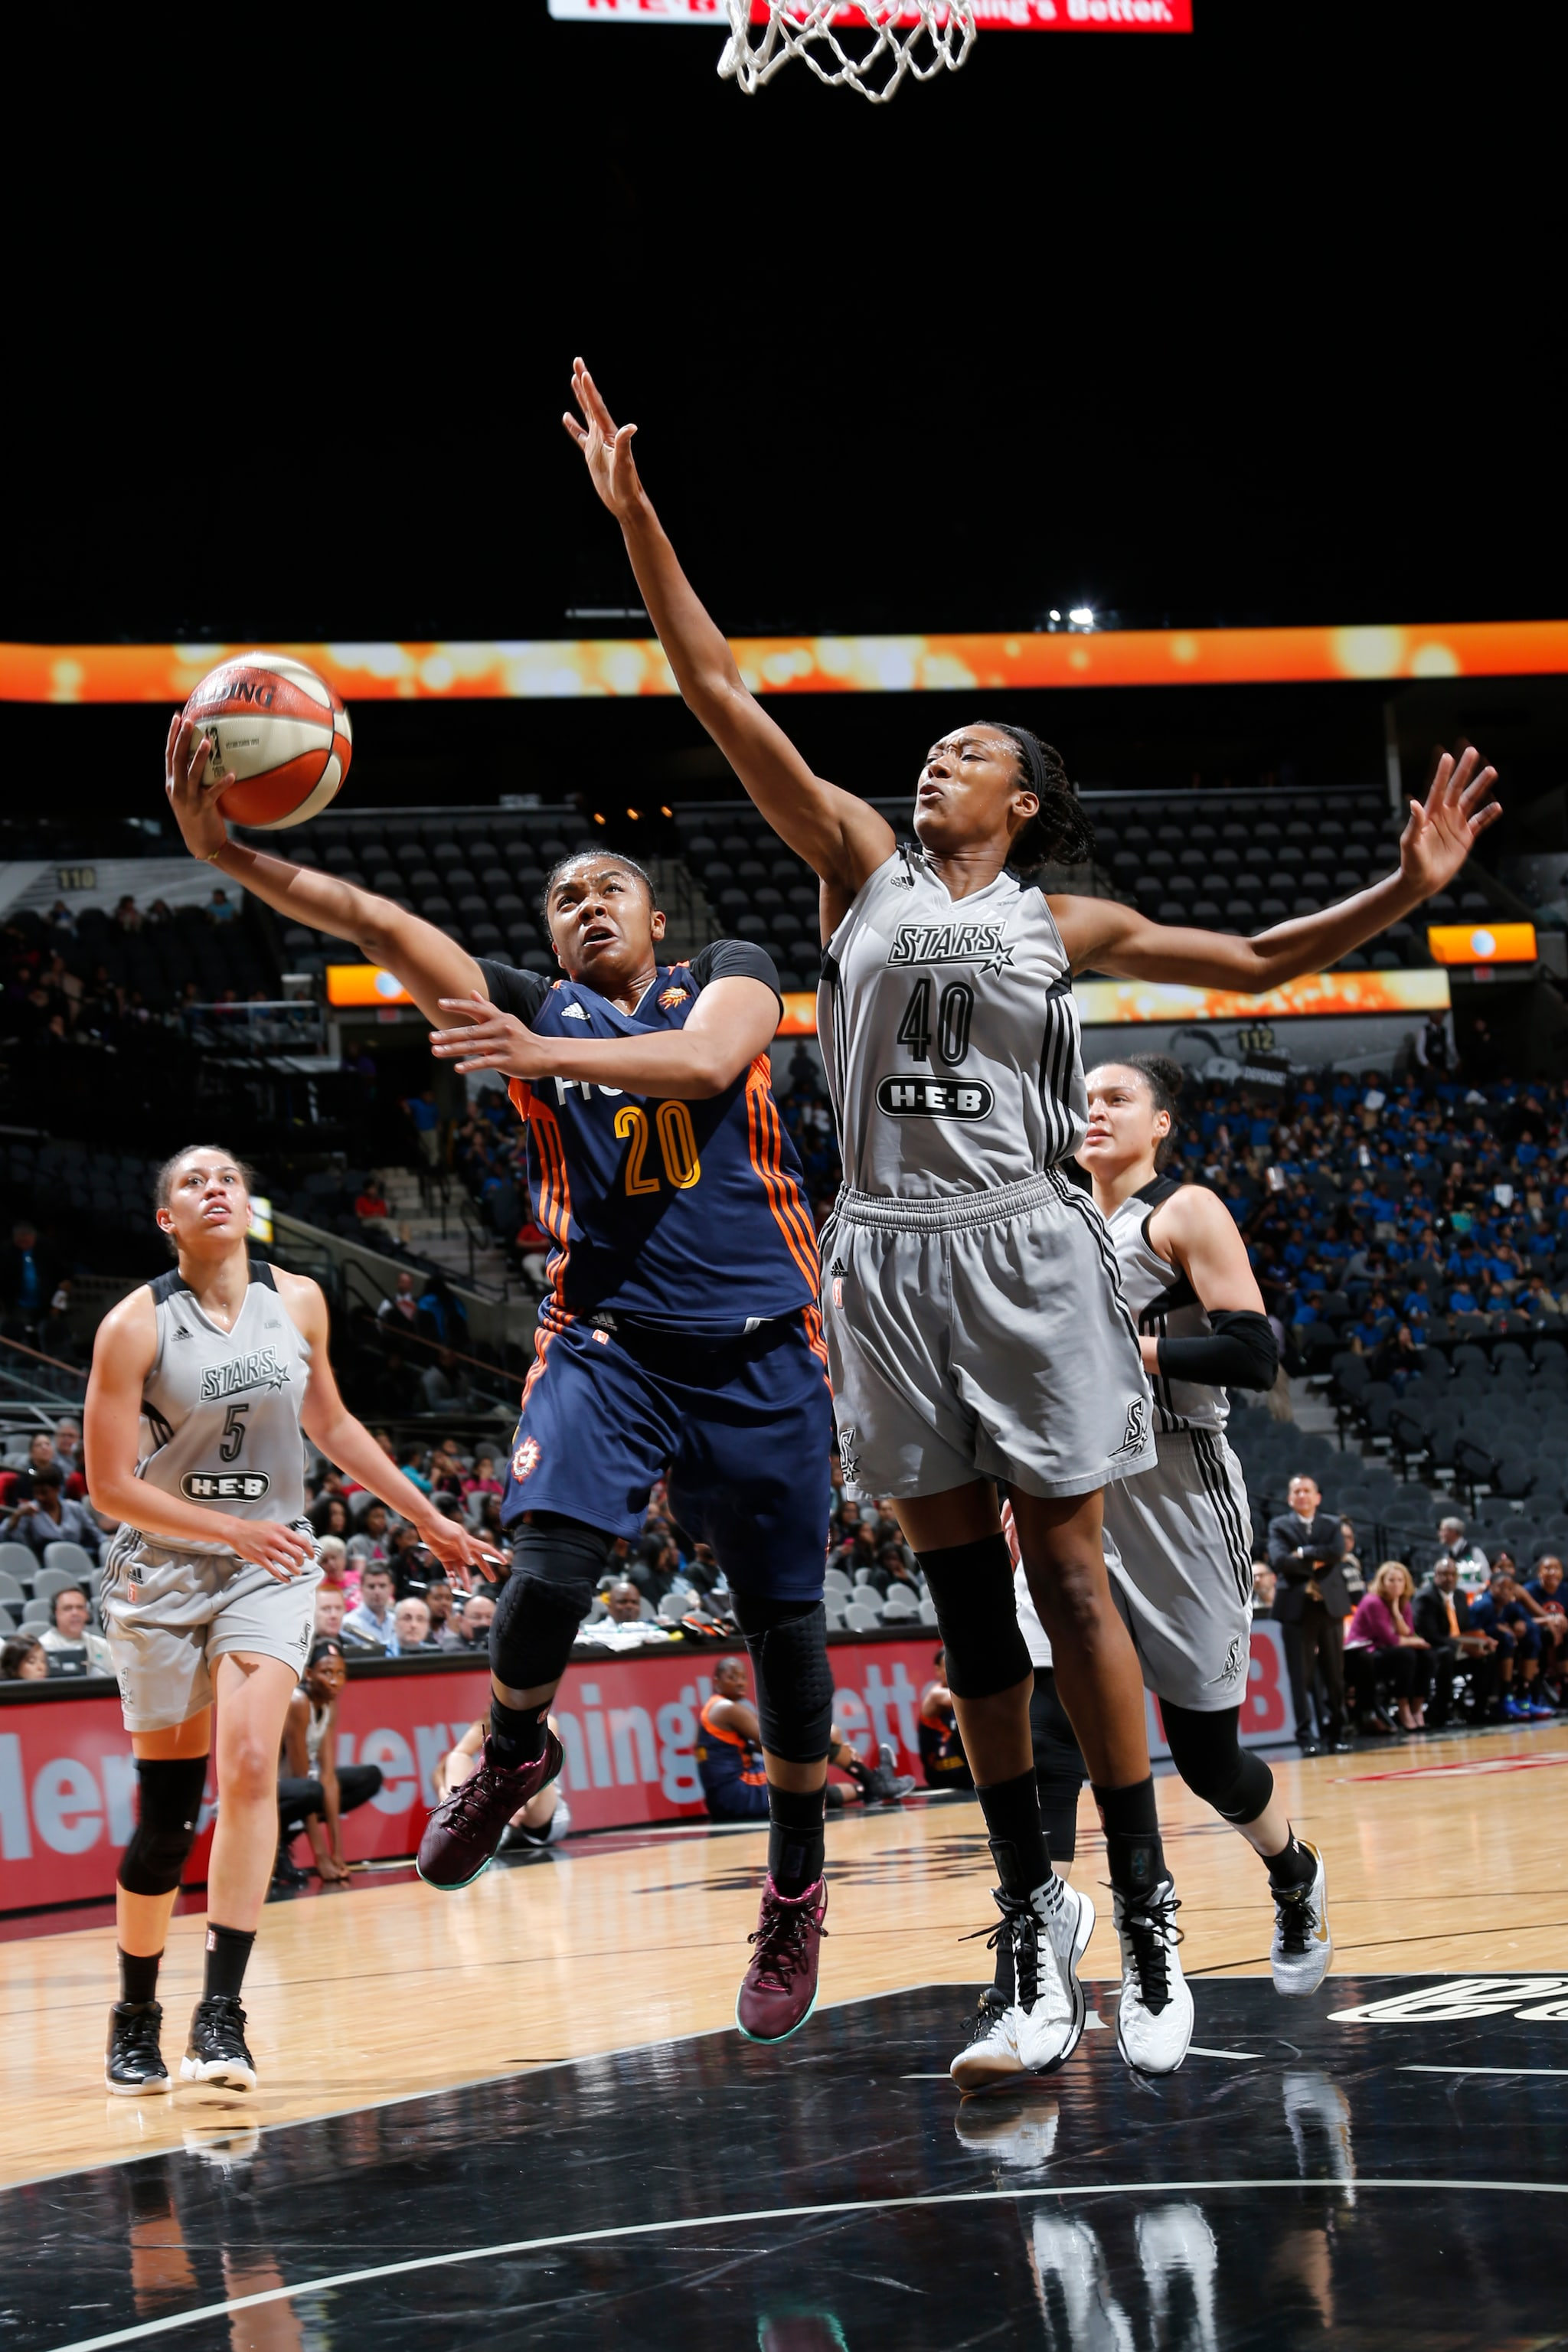 SAN ANTONIO, TX - MAY 19: Alex Bentley #20 of the Connecticut Sun drives to the basket against Kayla Alexander #40 of the San Antonio Stars on May 19, 2016 at AT&T Center in San Antonio, Texas. NOTE TO USER: User expressly acknowledges and agrees that, by downloading and or using this Photograph, user is consenting to the terms and conditions of the Getty Images License Agreement. Mandatory Copyright Notice: Copyright 2016 NBAE (Photo by Chris Covatta/NBAE via Getty Images)